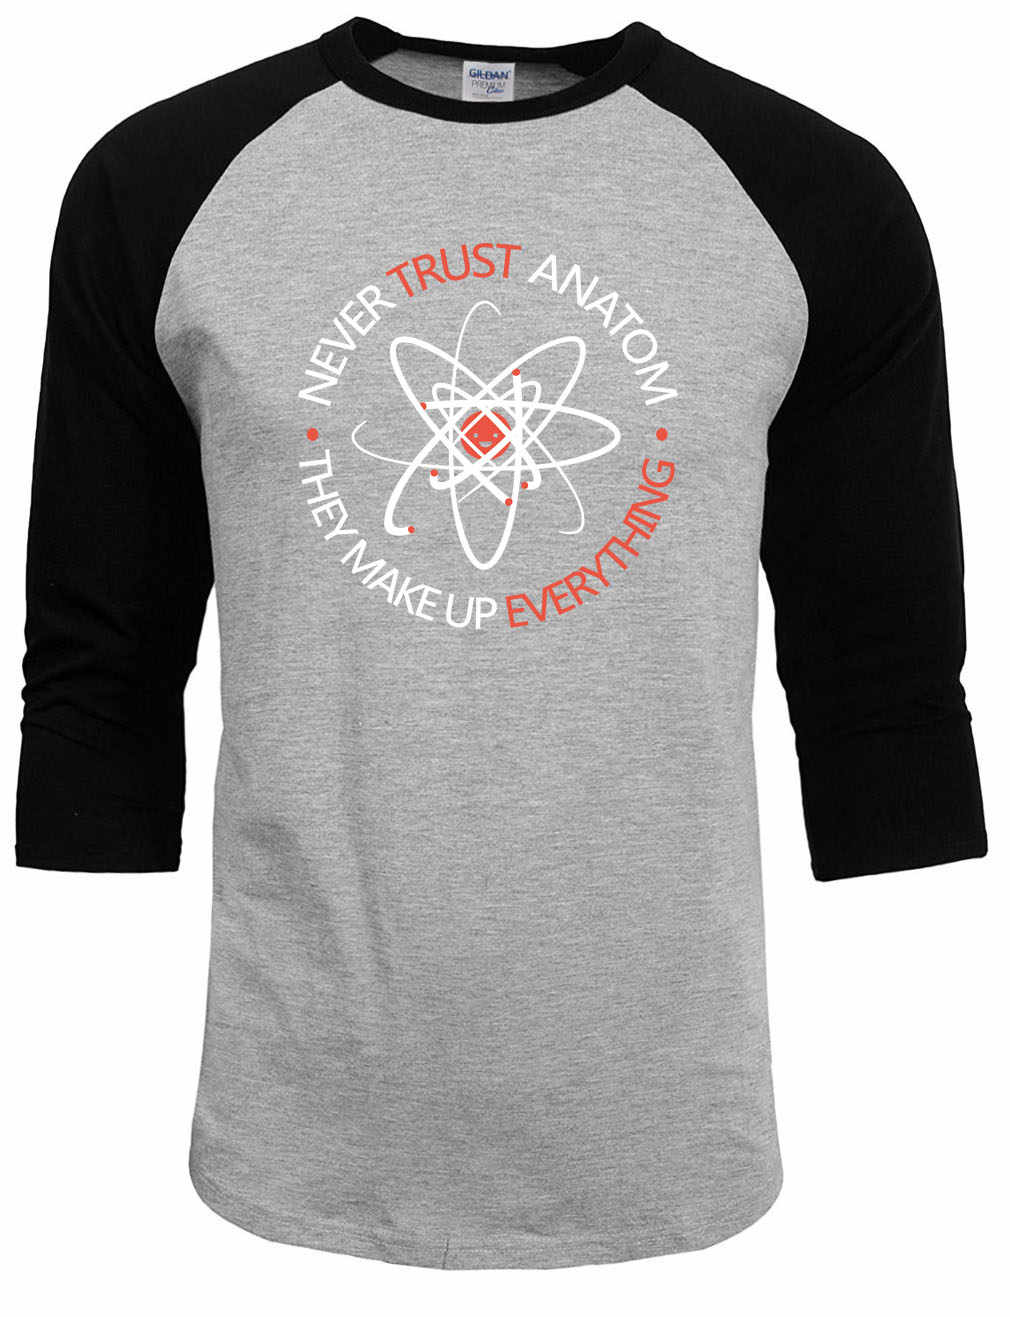 Never Trust an Atom, they Make Up Everything Science men T-shirt 2017 summer autumn band tops funny t shirts male raglan sleeve